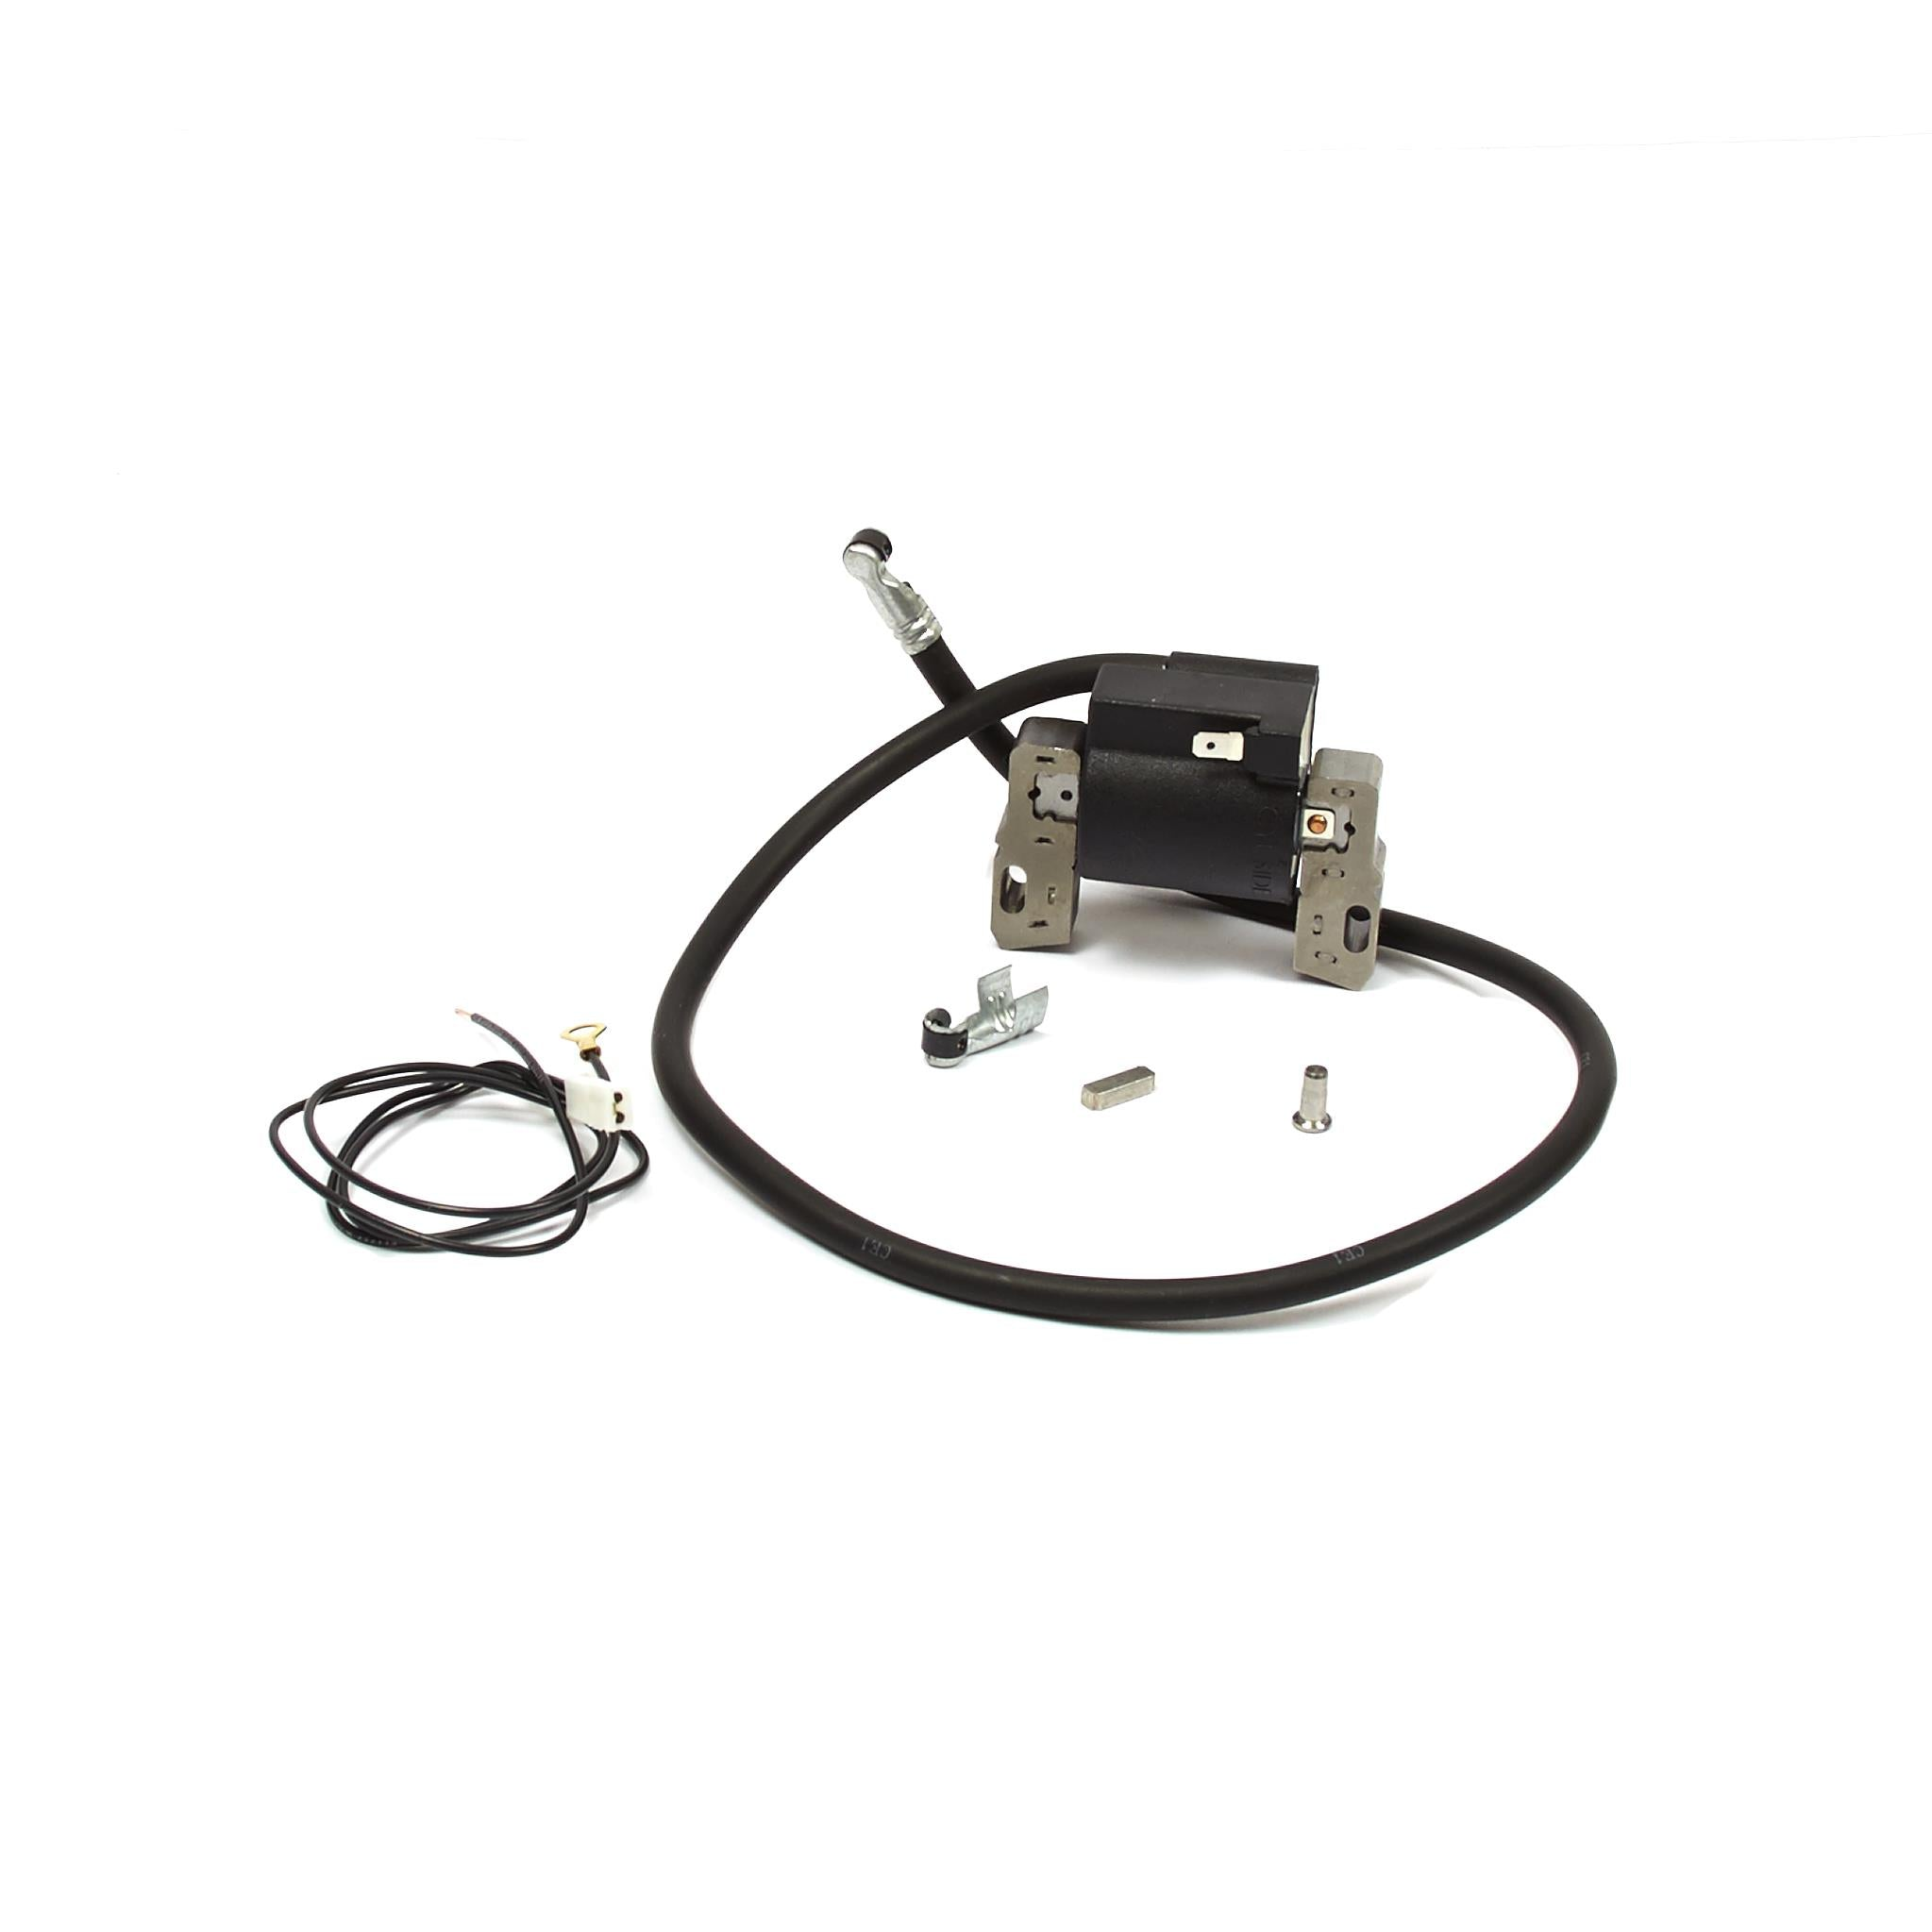 398811 Ignition Coil for Briggs Stratton 170417 170431 170432 192404 192407 190701 190702 190707 170401 170402 170403 Replaces 395492 395326 398265